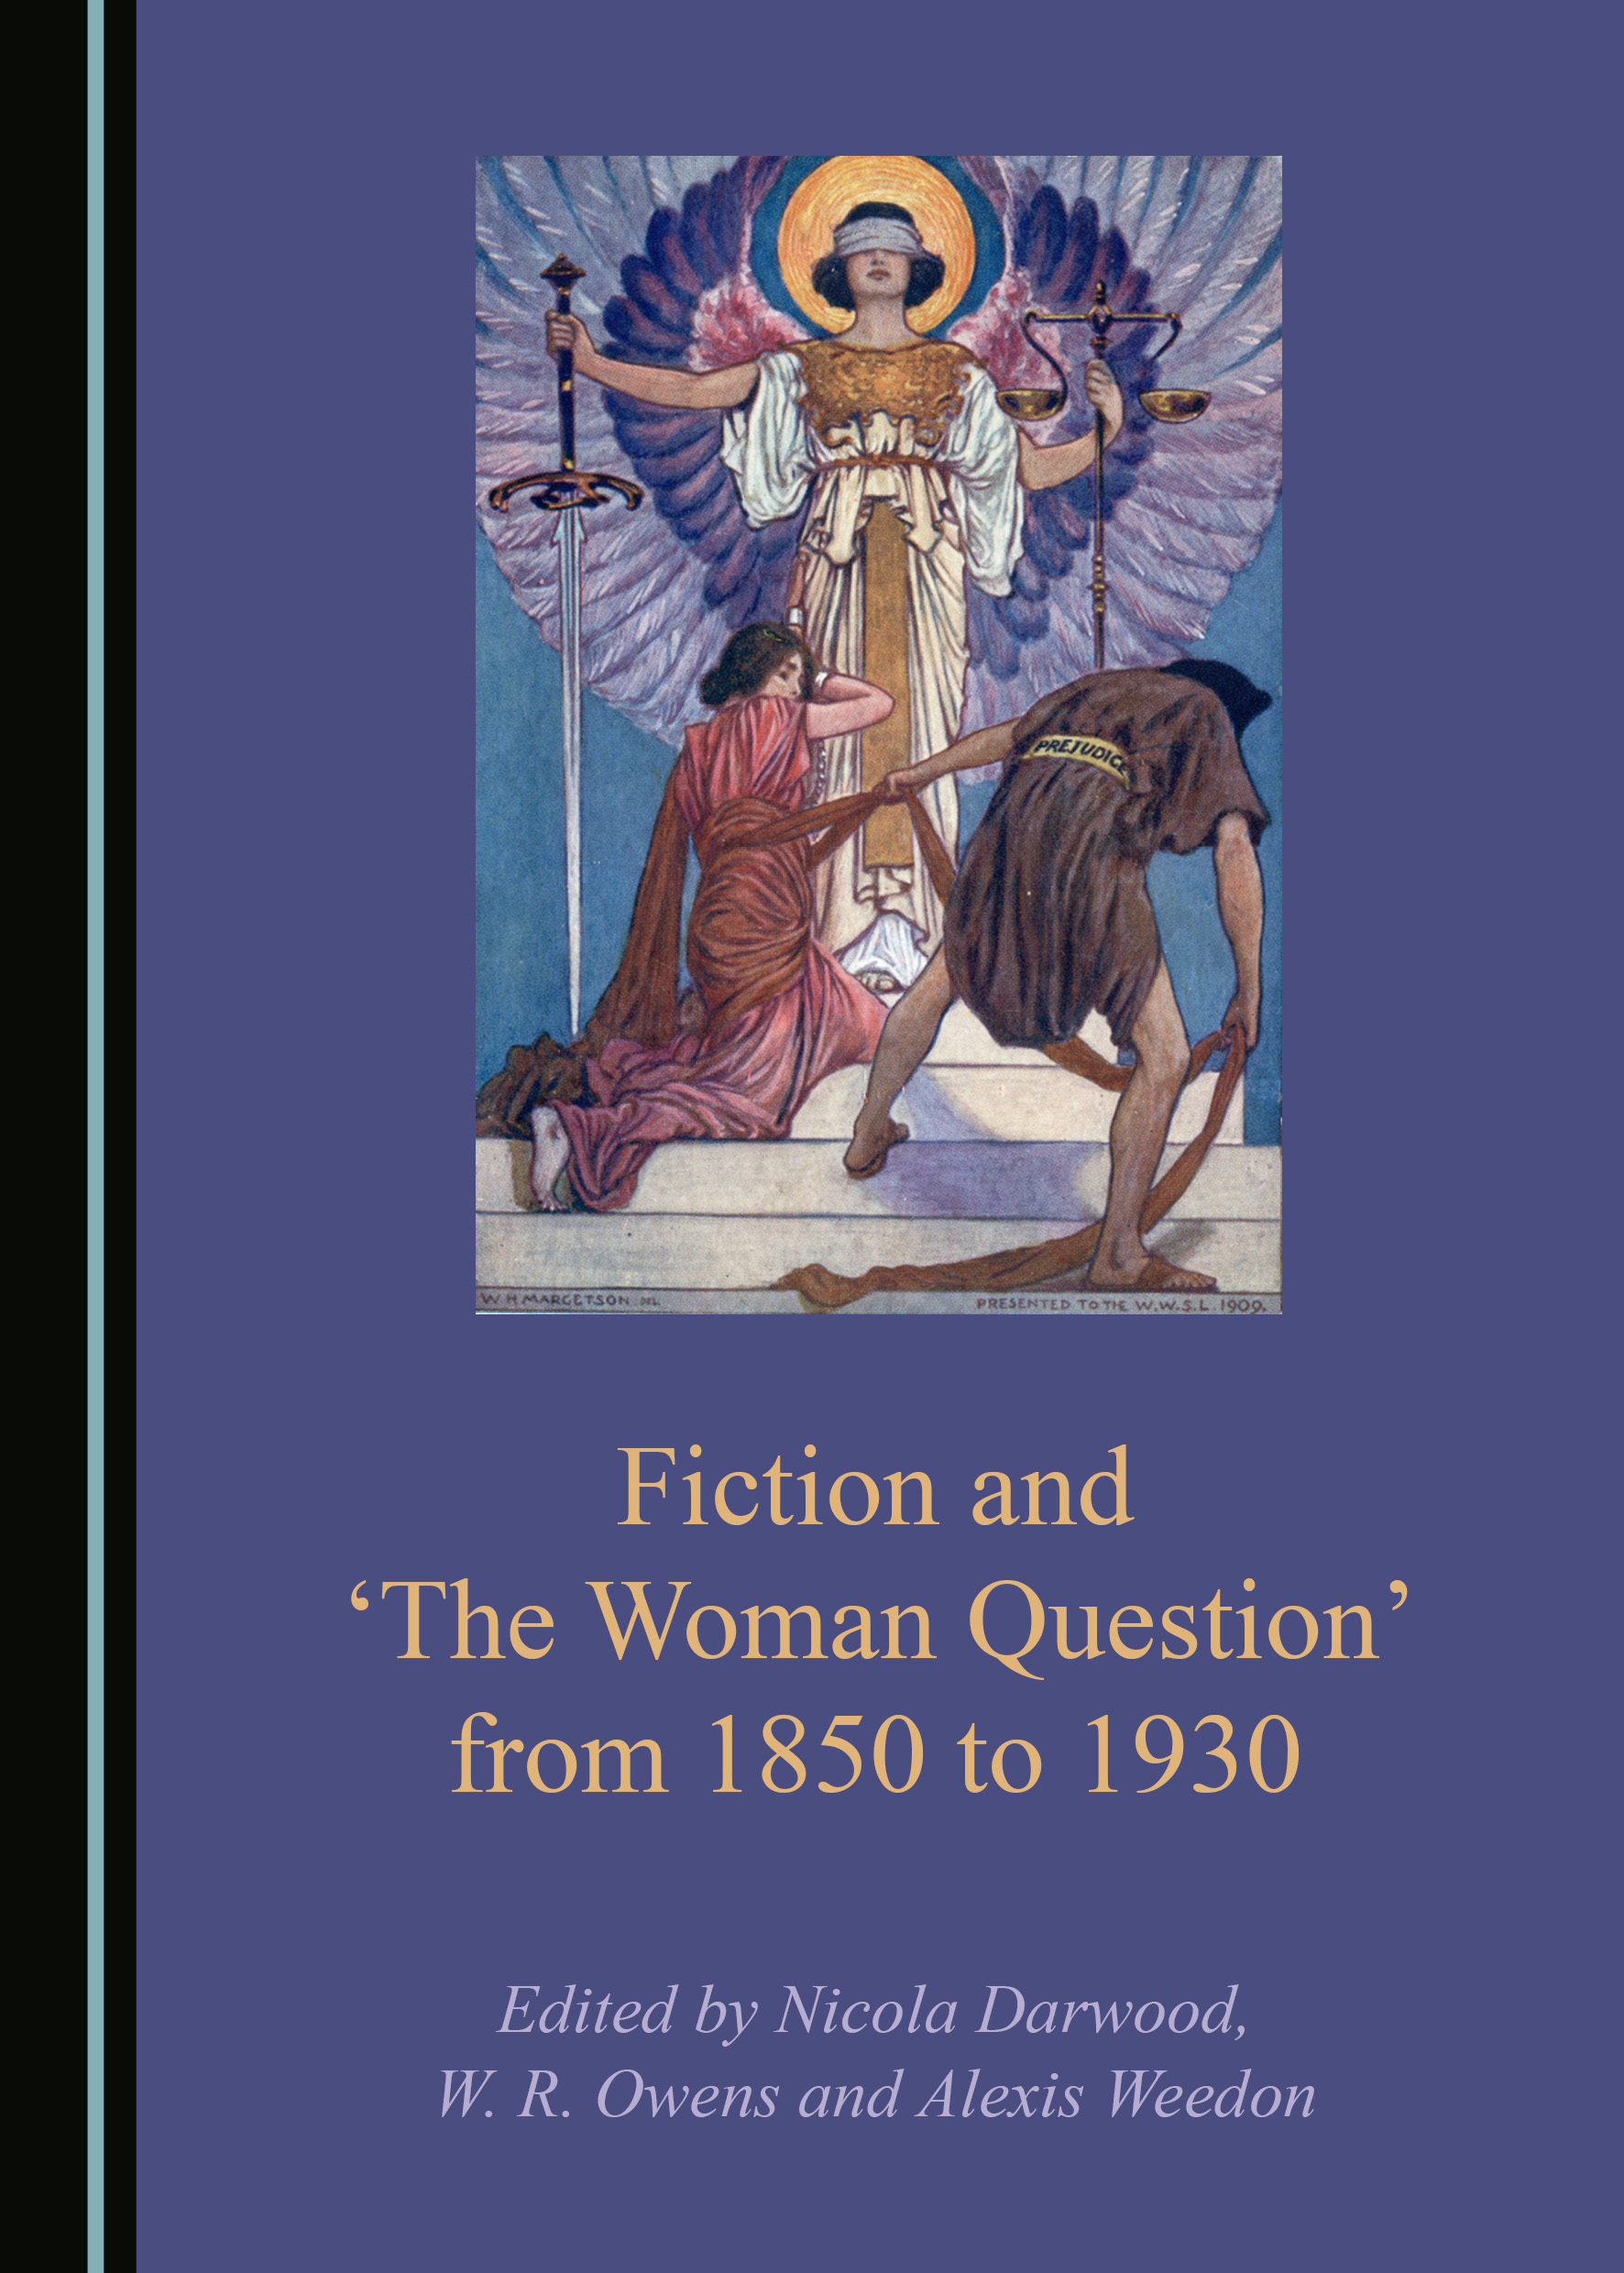 Fiction and 'The Woman Question' from 1850 to 1930